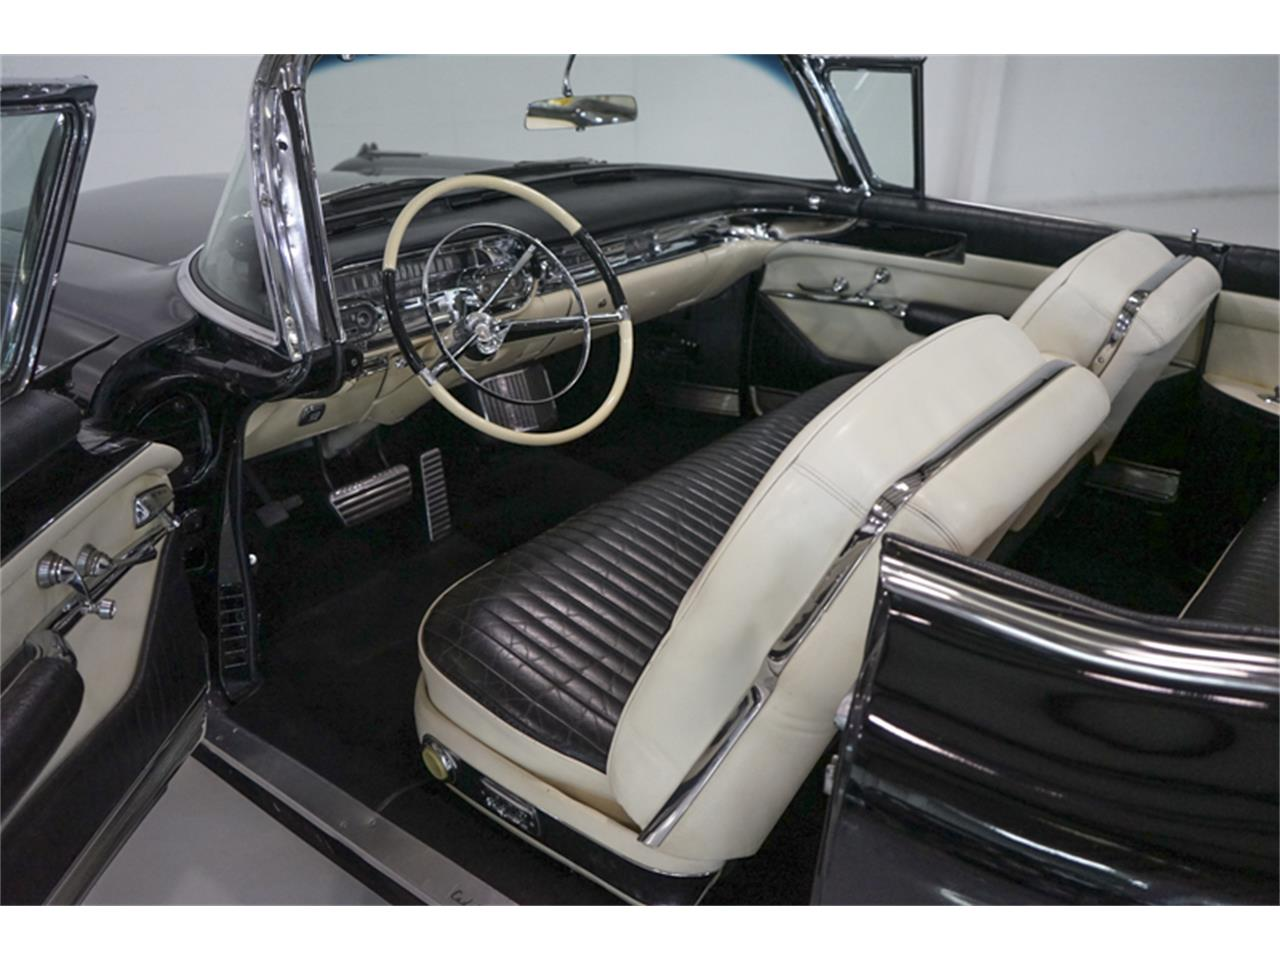 1957 Cadillac Eldorado (CC-1330438) for sale in Saint Louis, Missouri